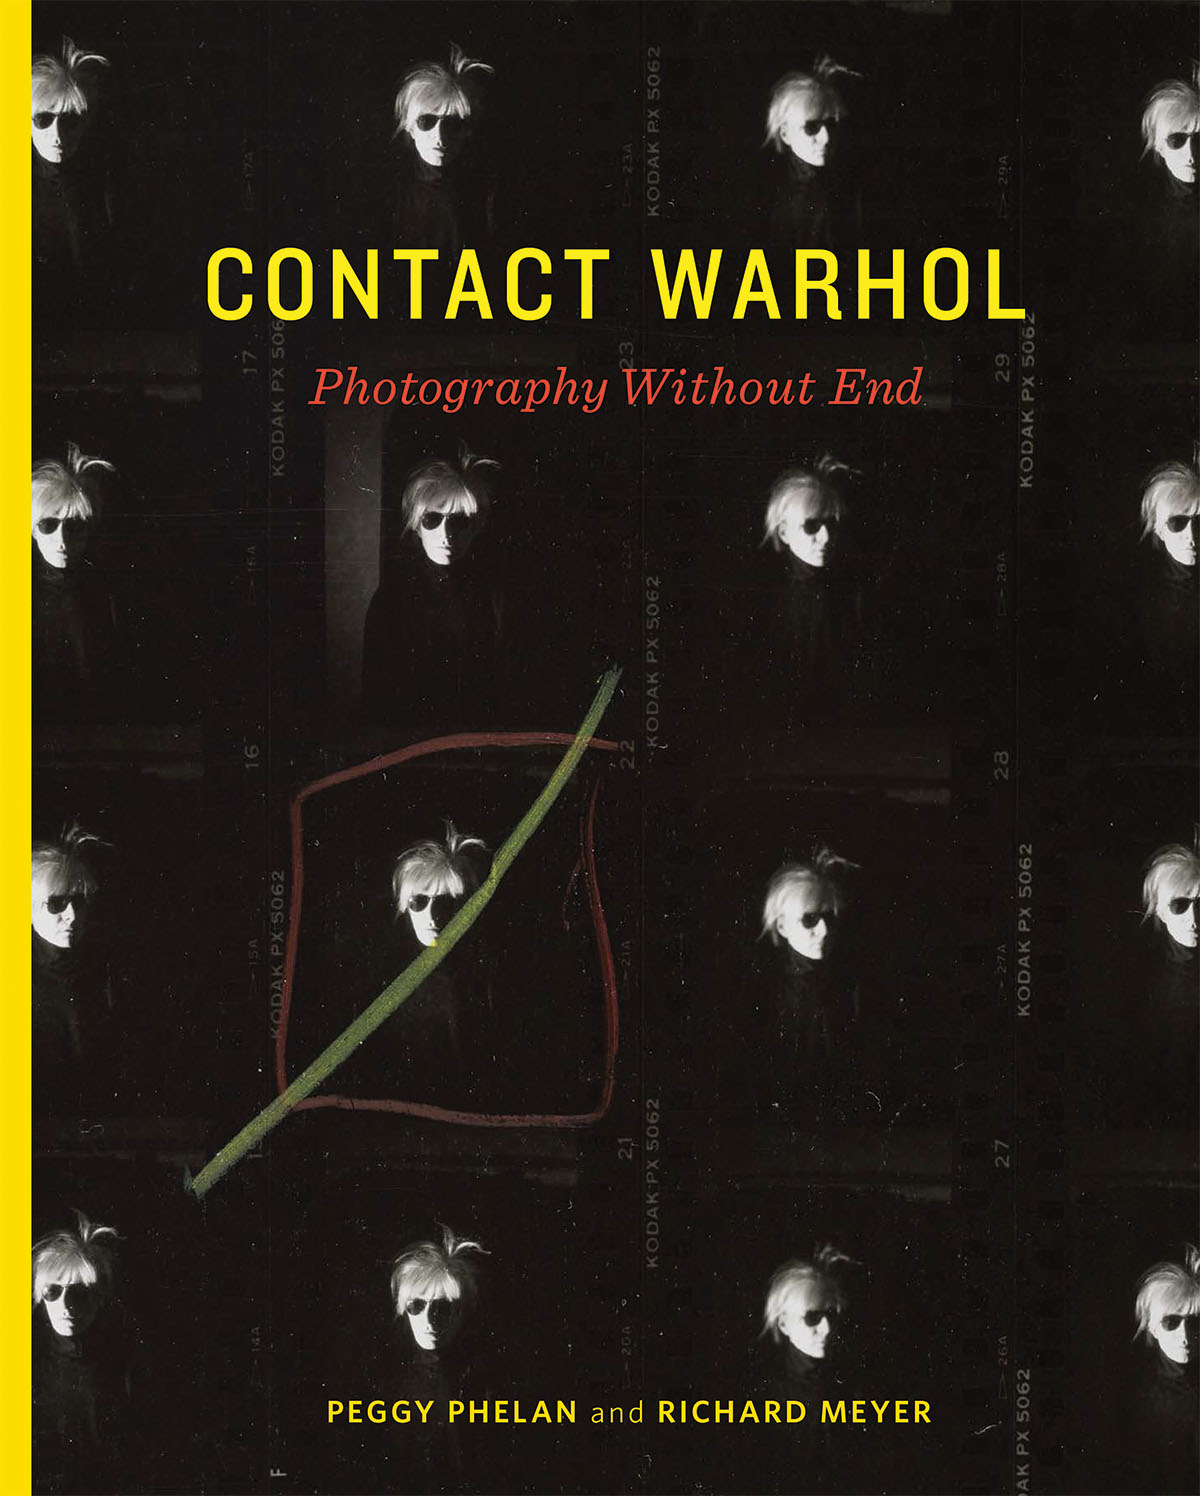 An Exhibition about Andy Warhol at Stanford – Fubiz Media Design